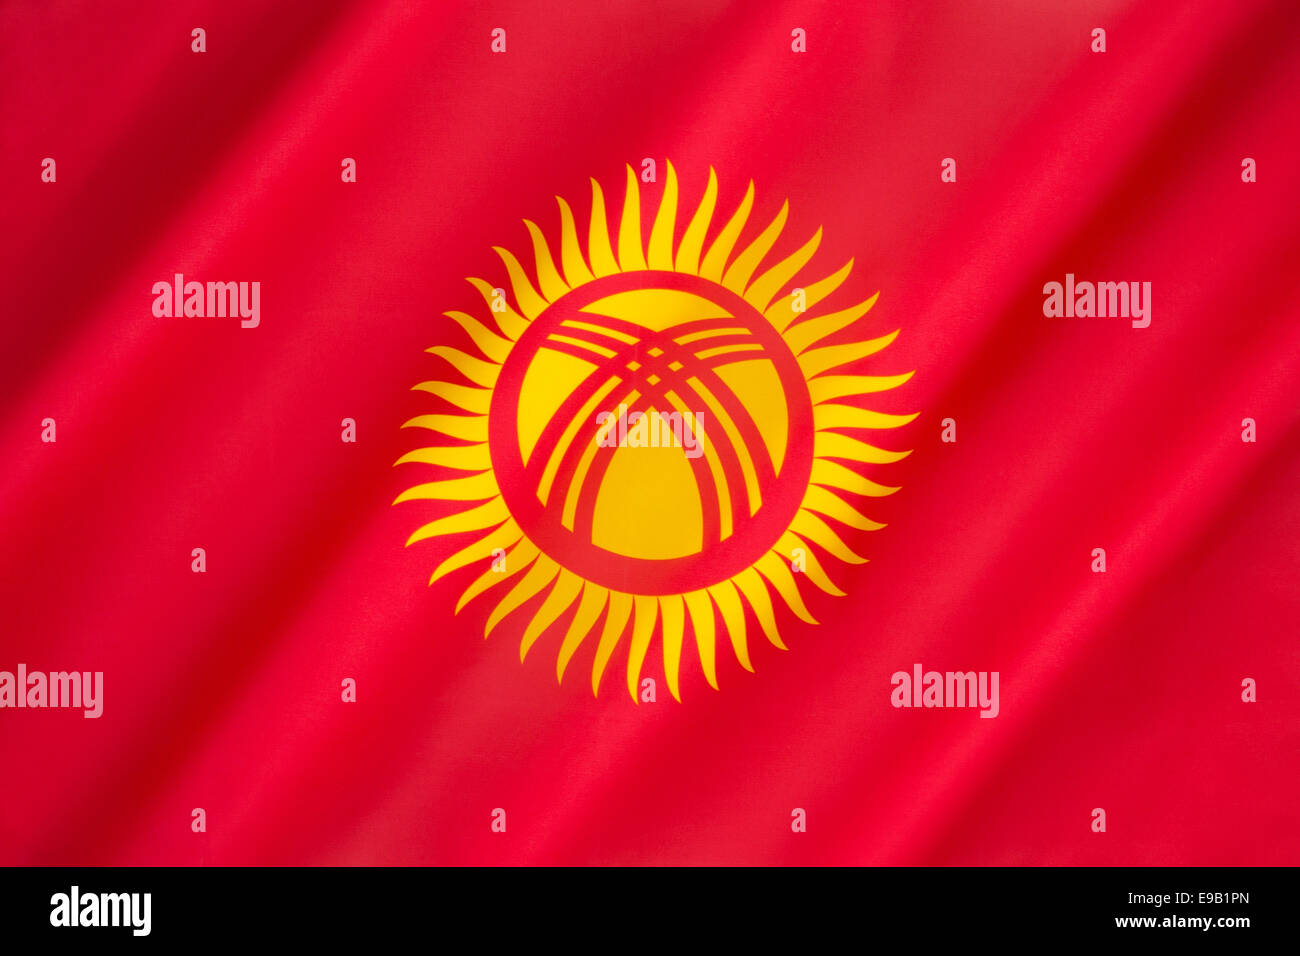 Flag of The Republic of Kyrgyzstan - Stock Image